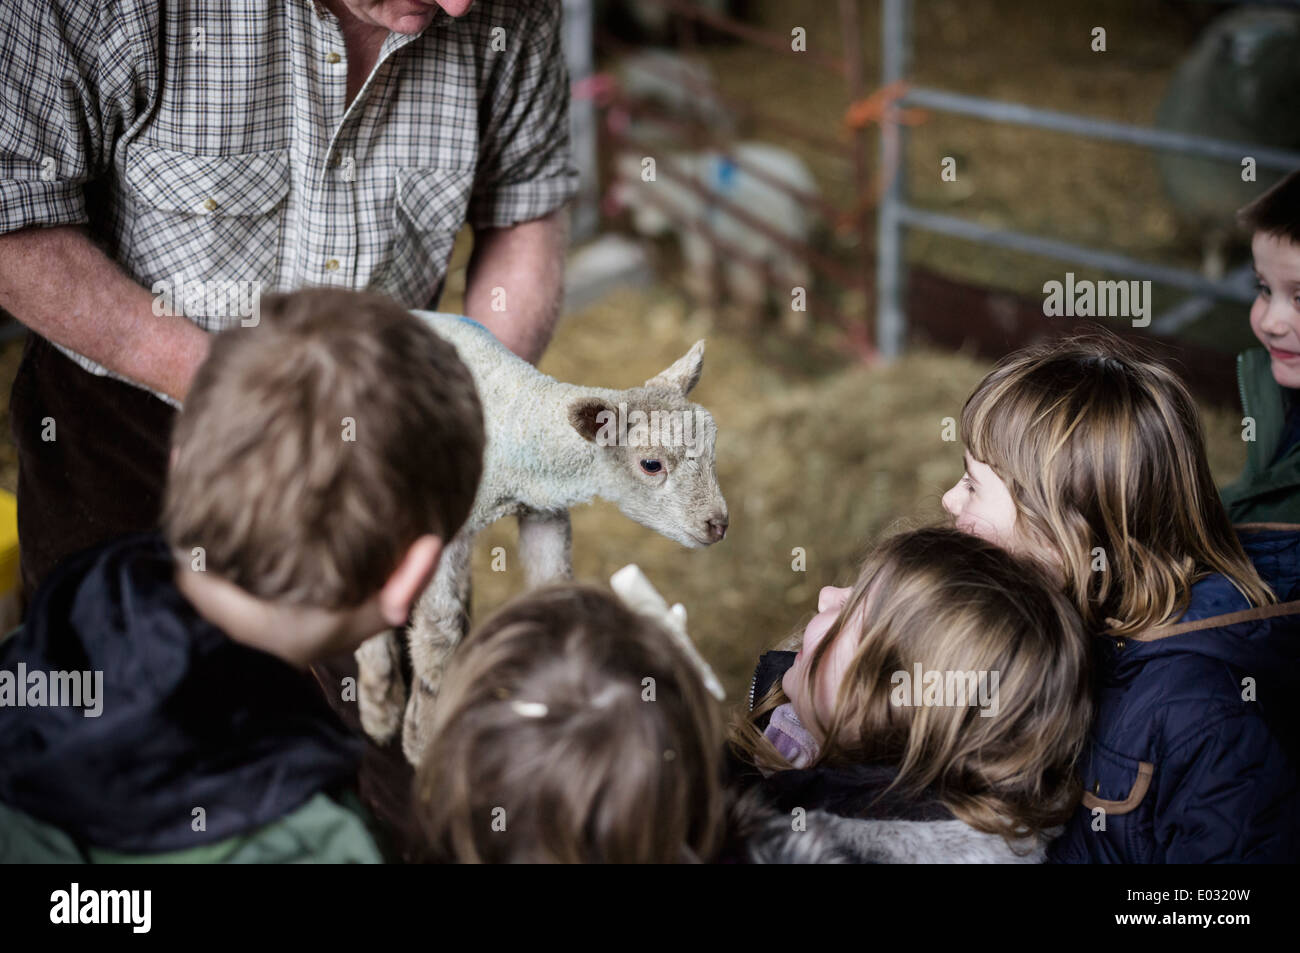 Children and new-born lambs in a lambing shed. - Stock Image